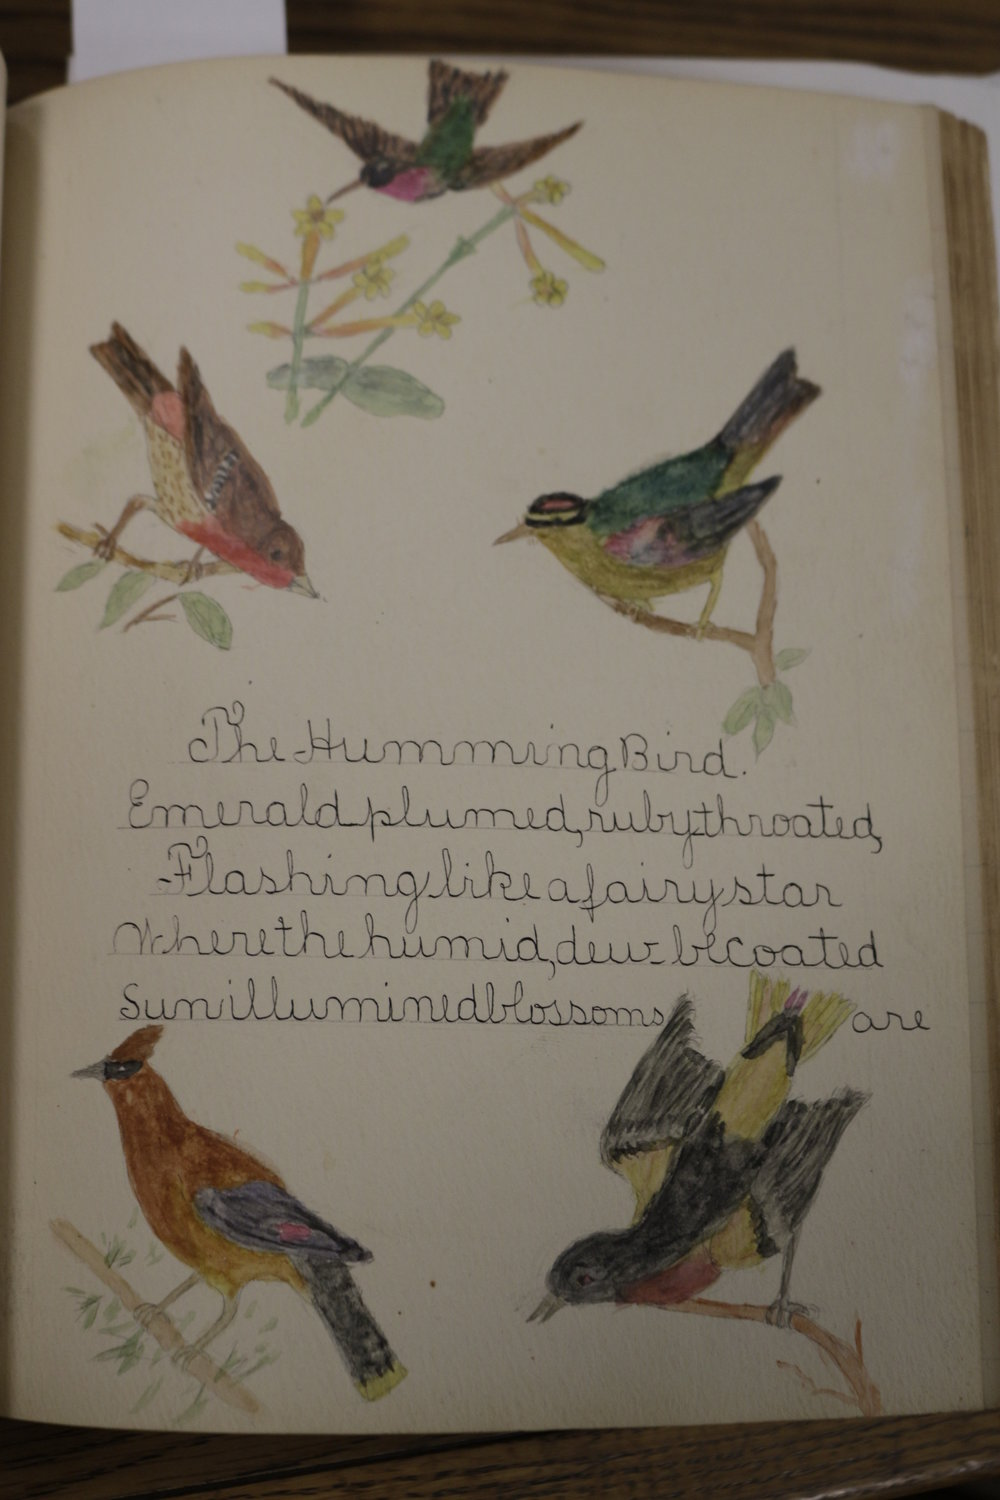 Illustration by Joseph Loveington, age not provided. Poem by Edith W. Barber, 12 years old. PS 20, Staten Island.